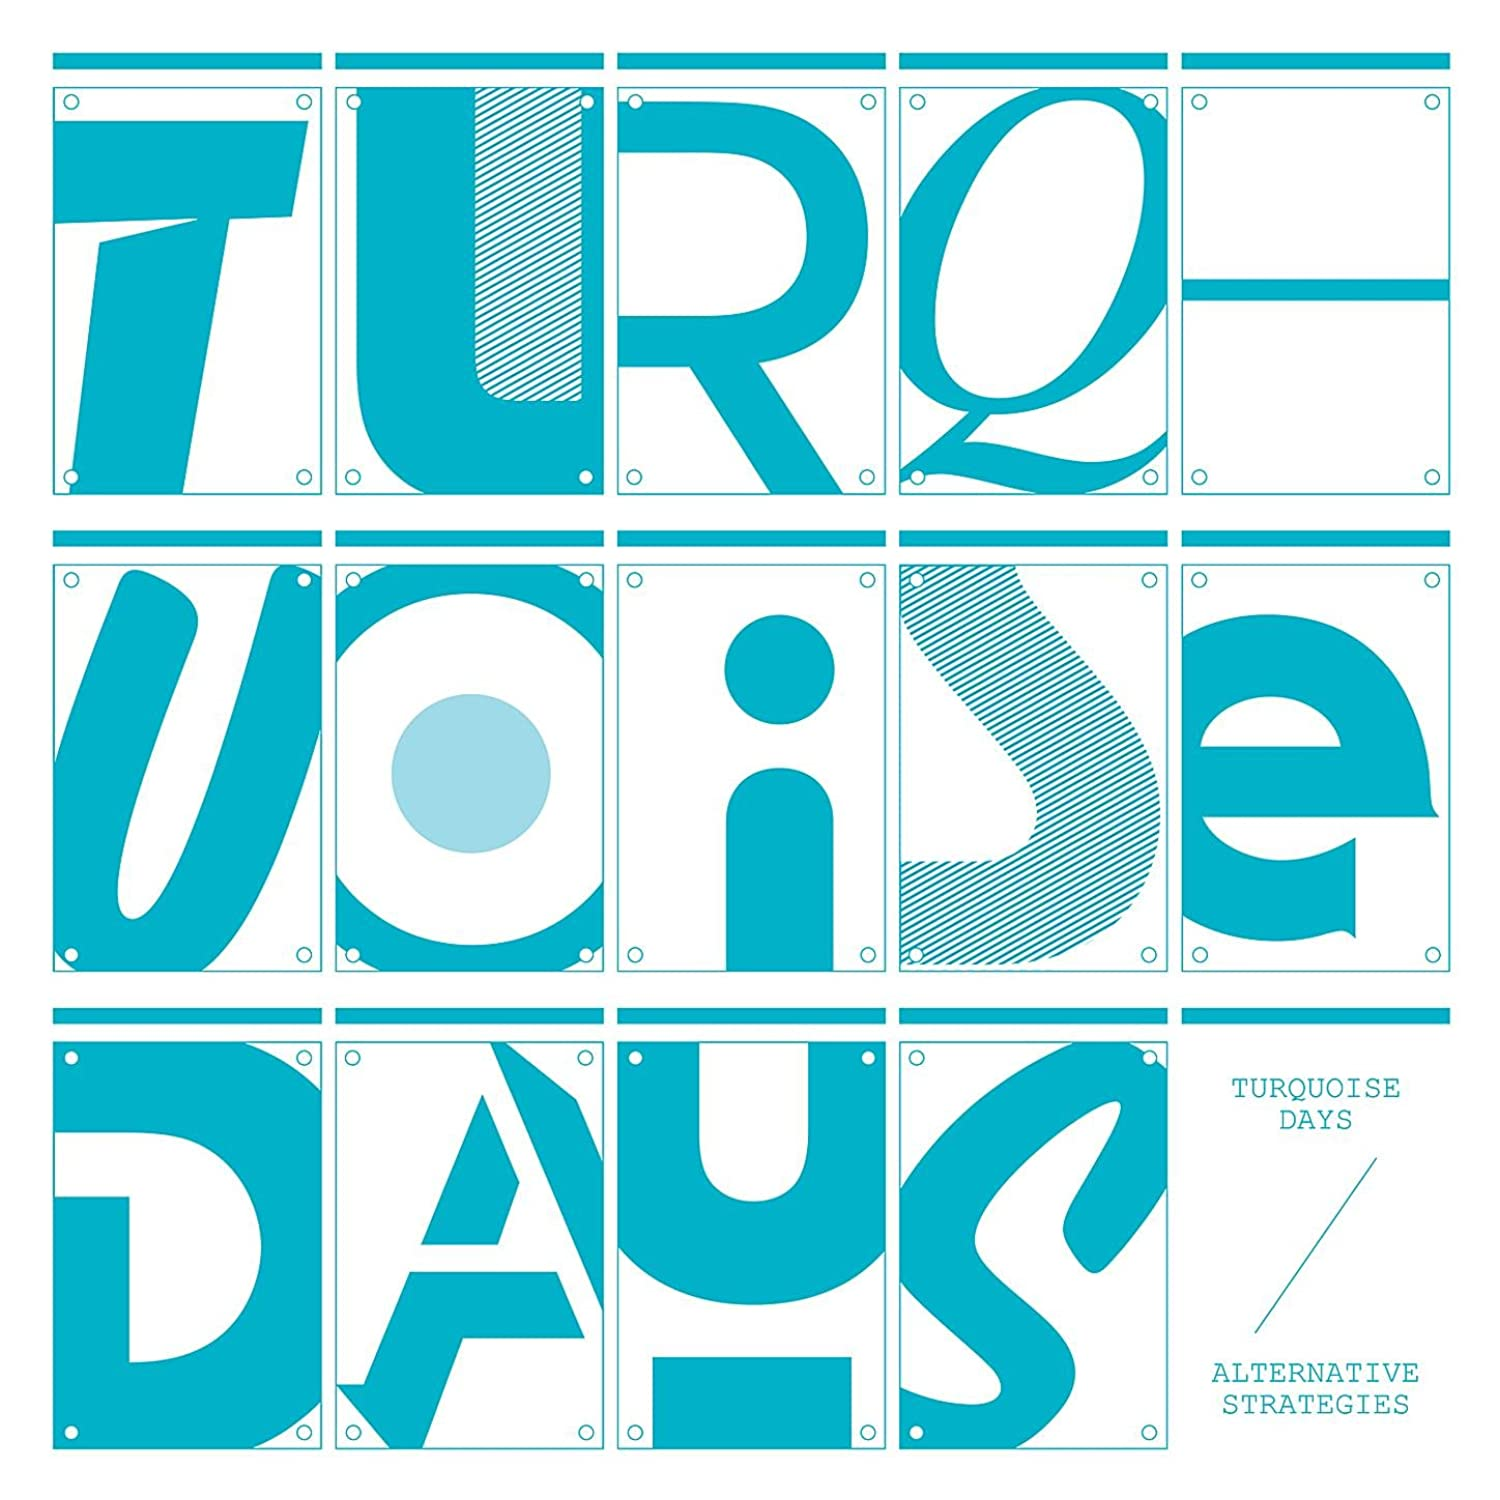 Turquoise Days - Alternative Strategies